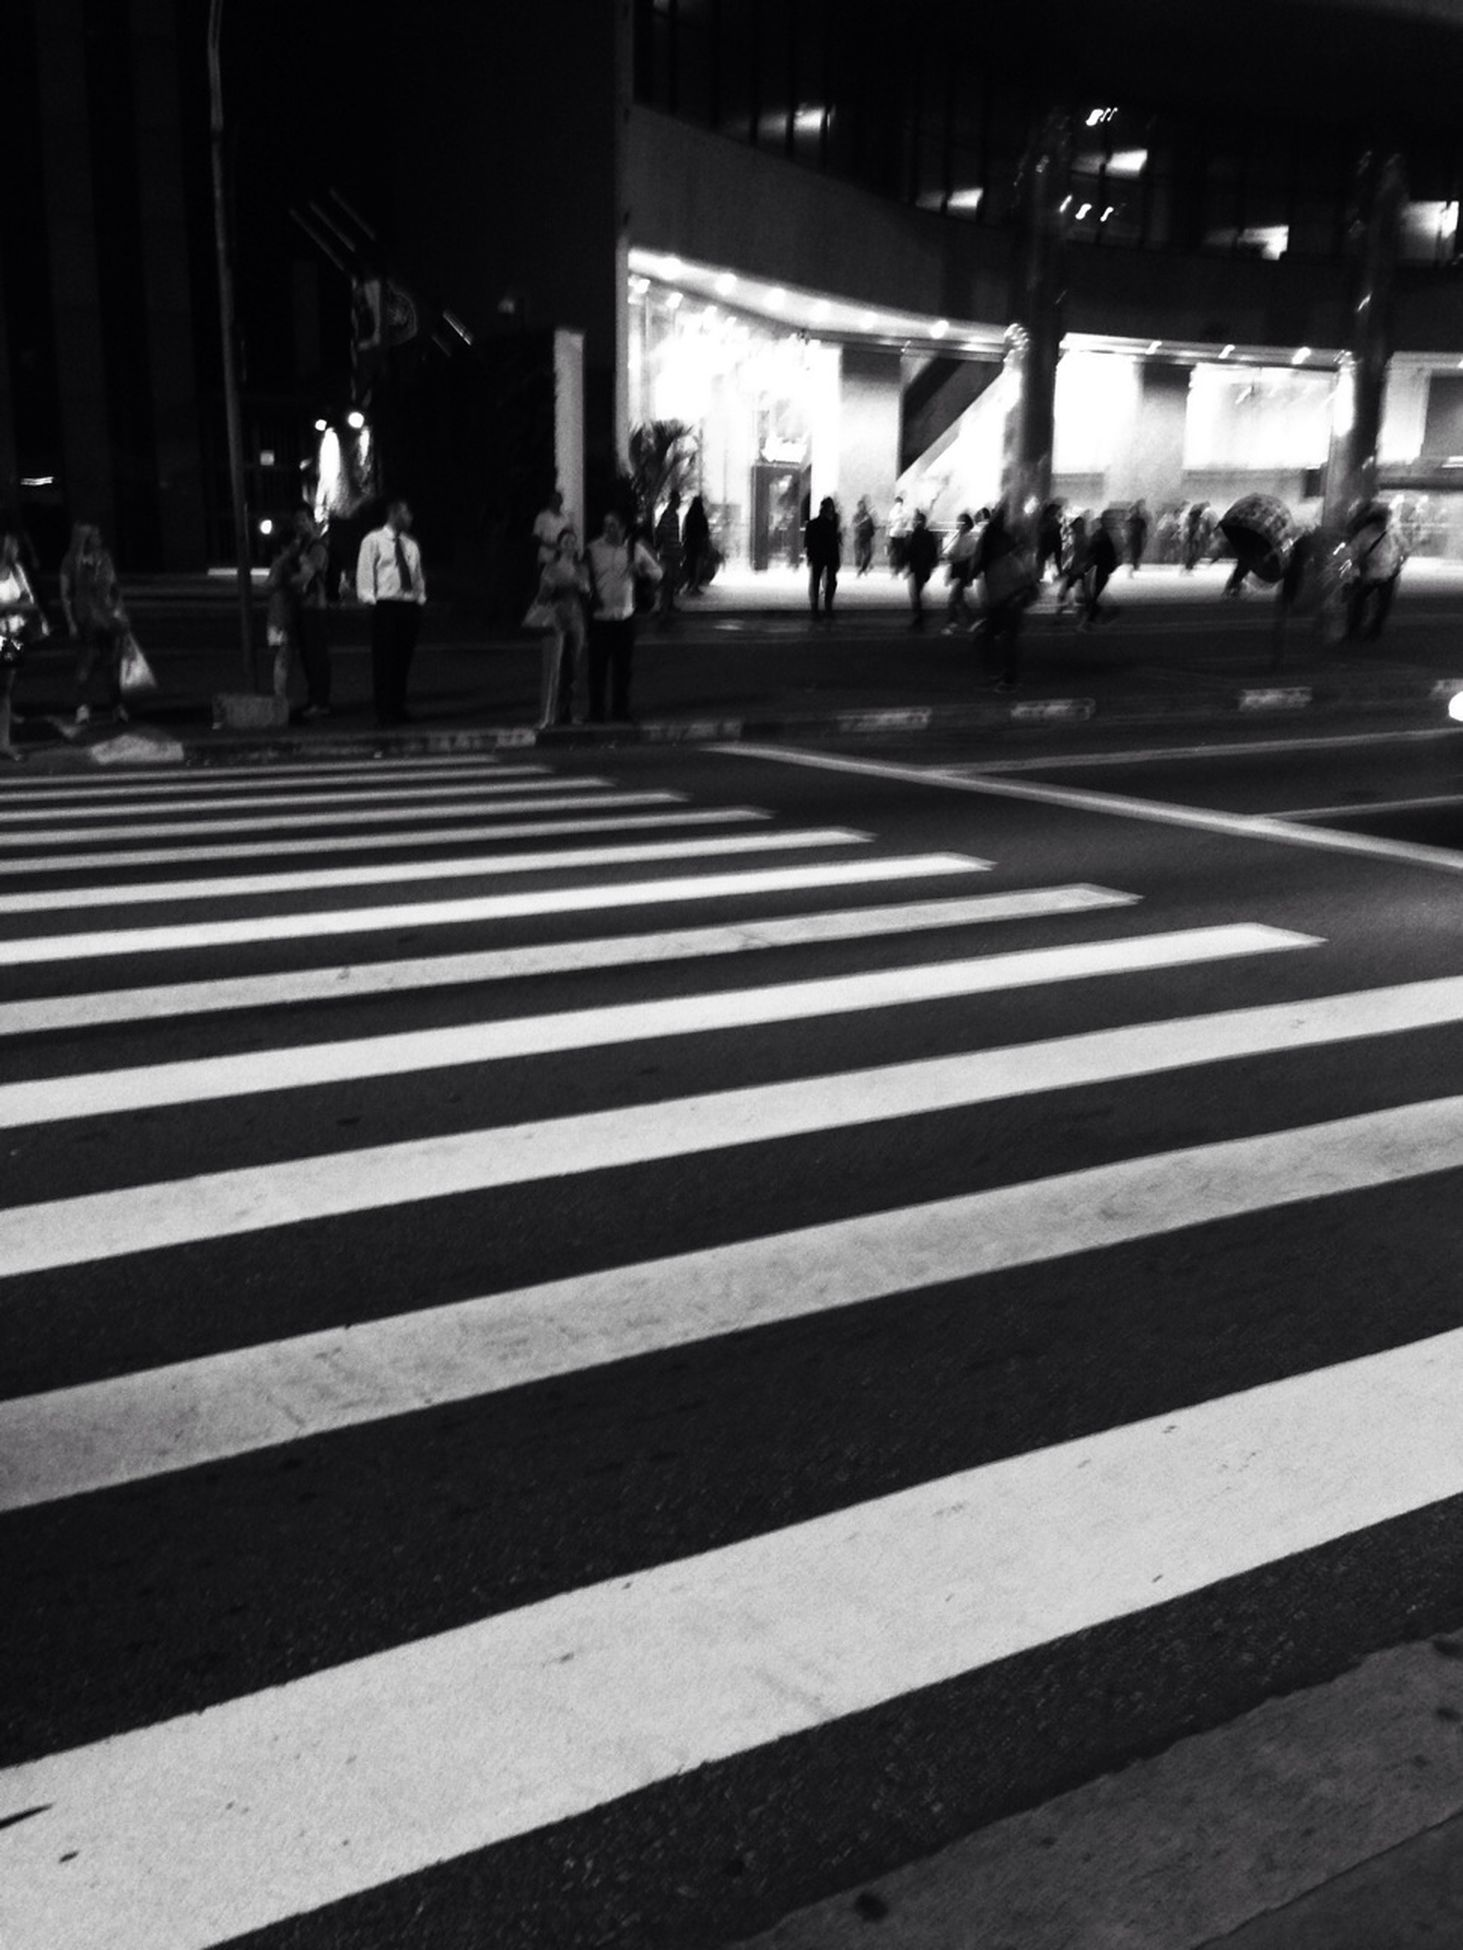 Streetphotography Blackandwhite AMPt_community Show Us Your Thirty